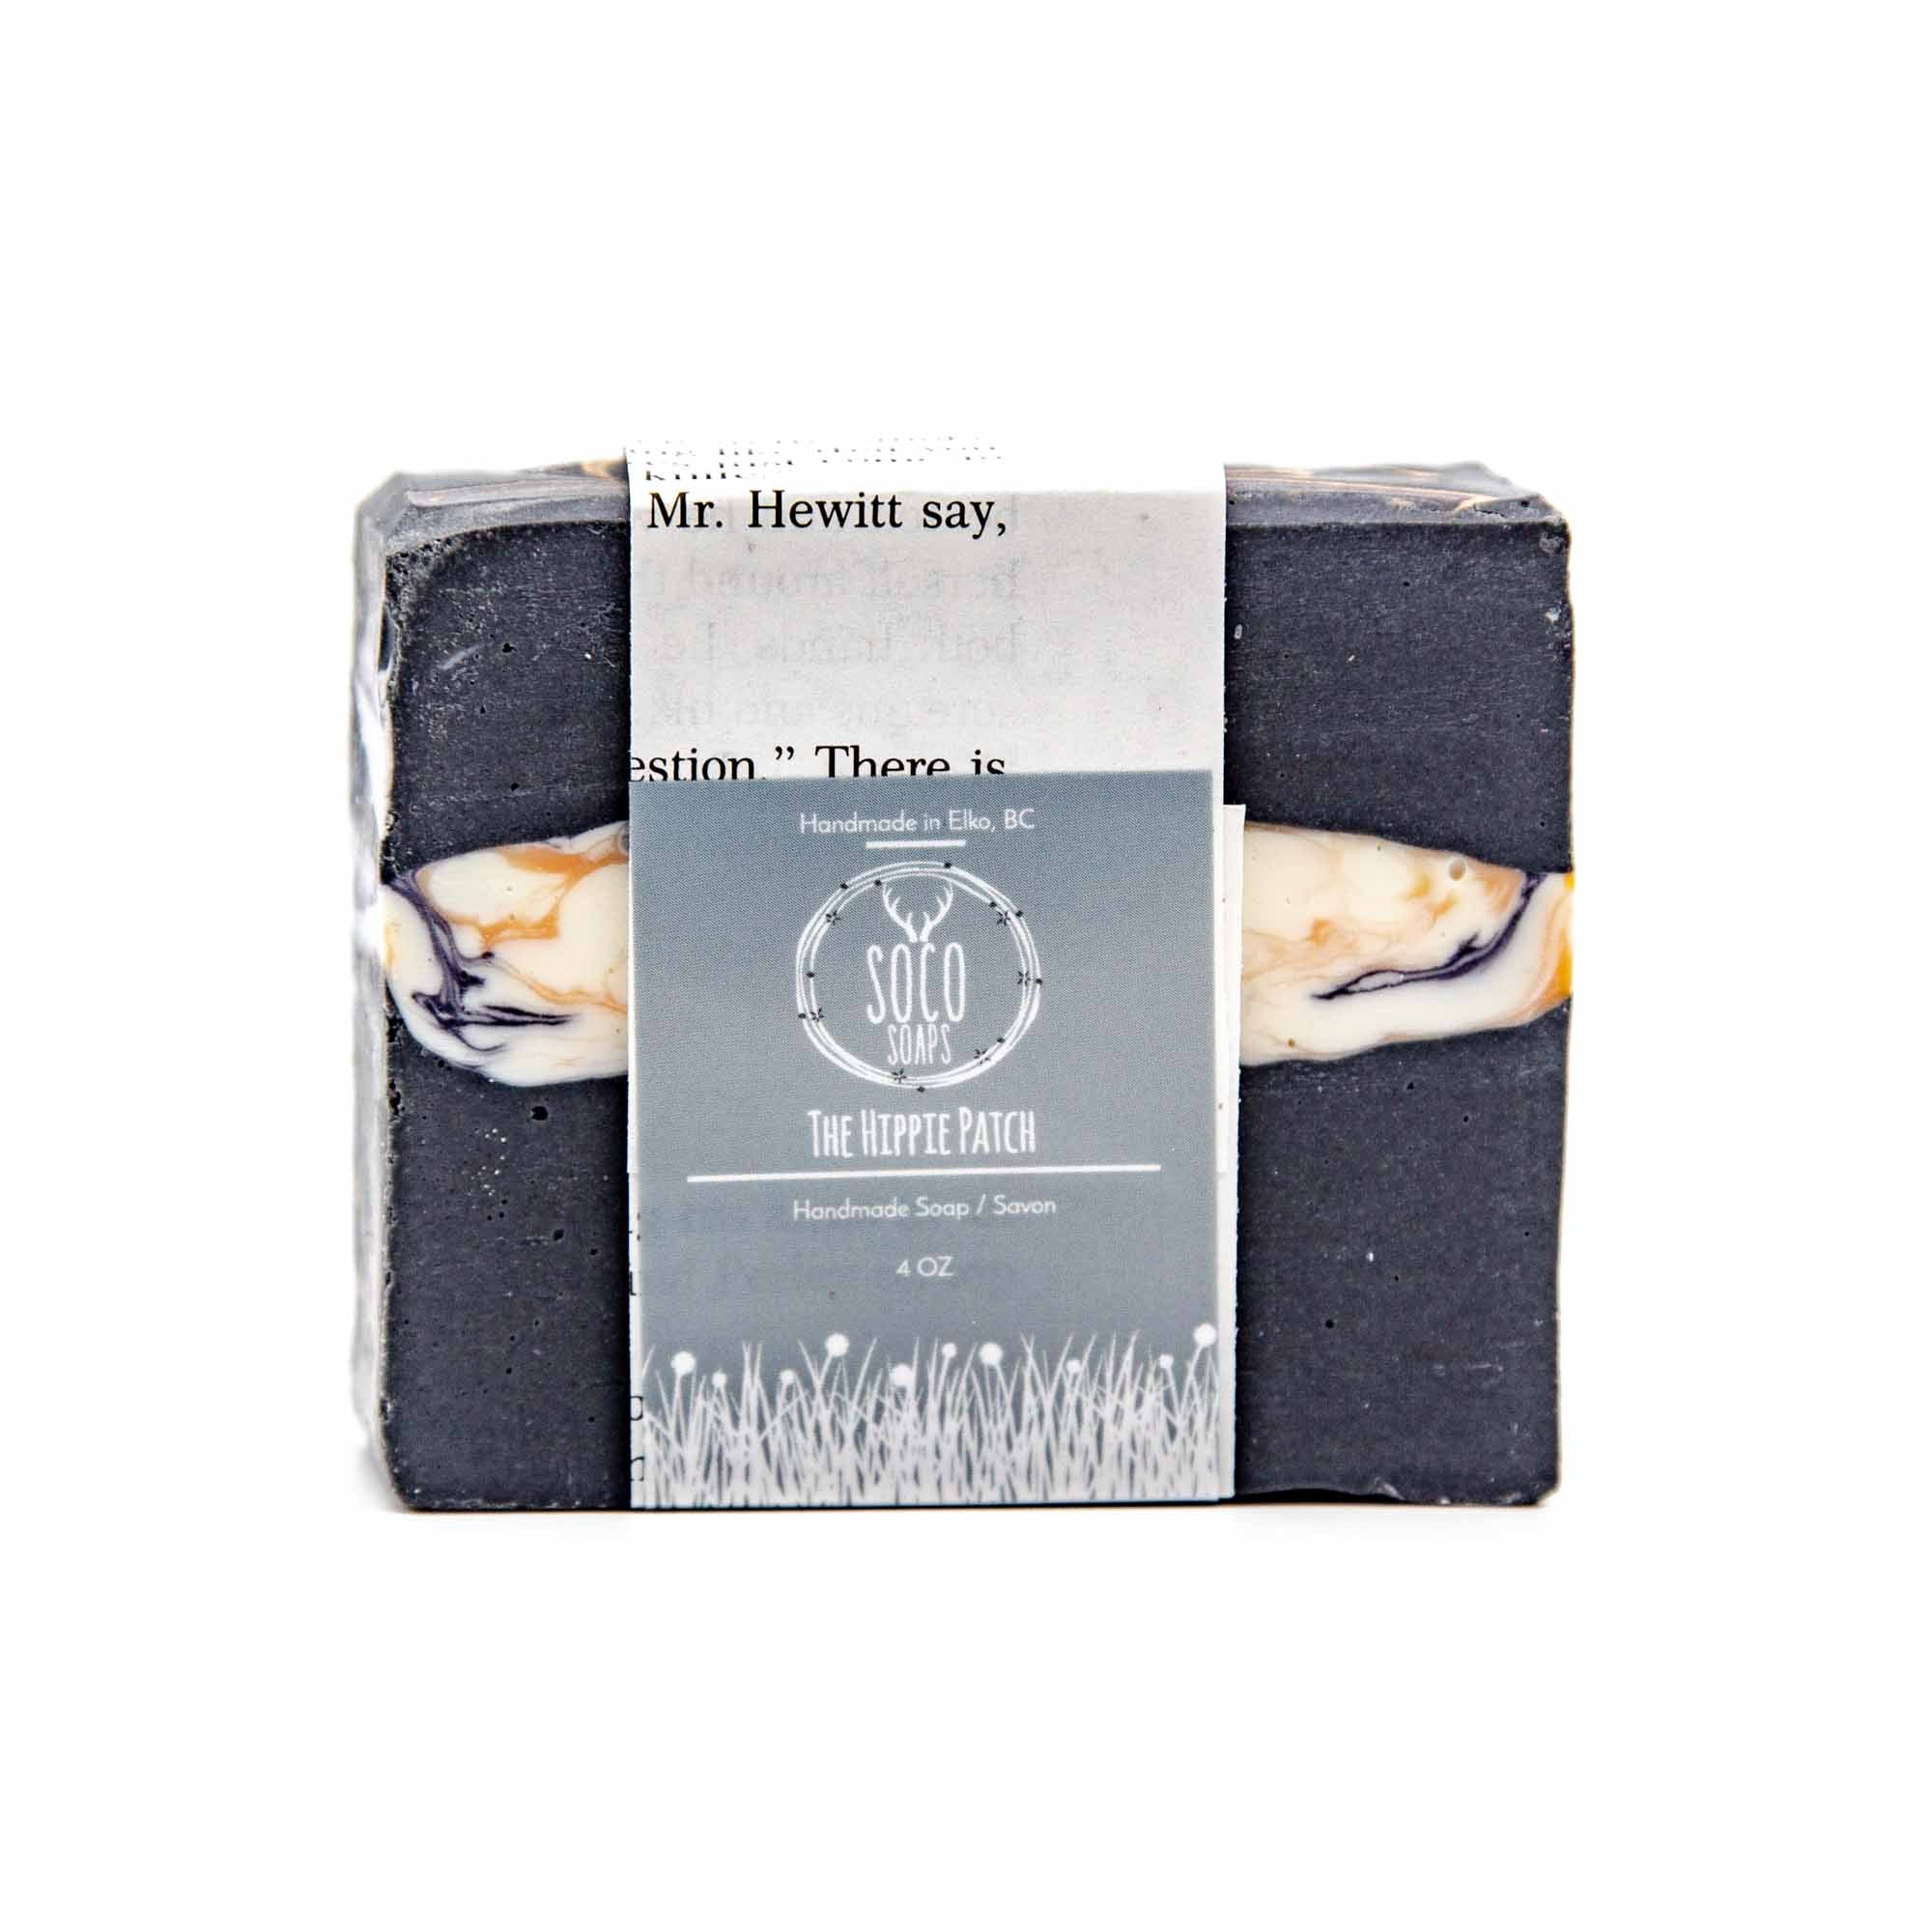 Soco Soaps The Hippie Patch Bar Soap - Mortise And Tenon